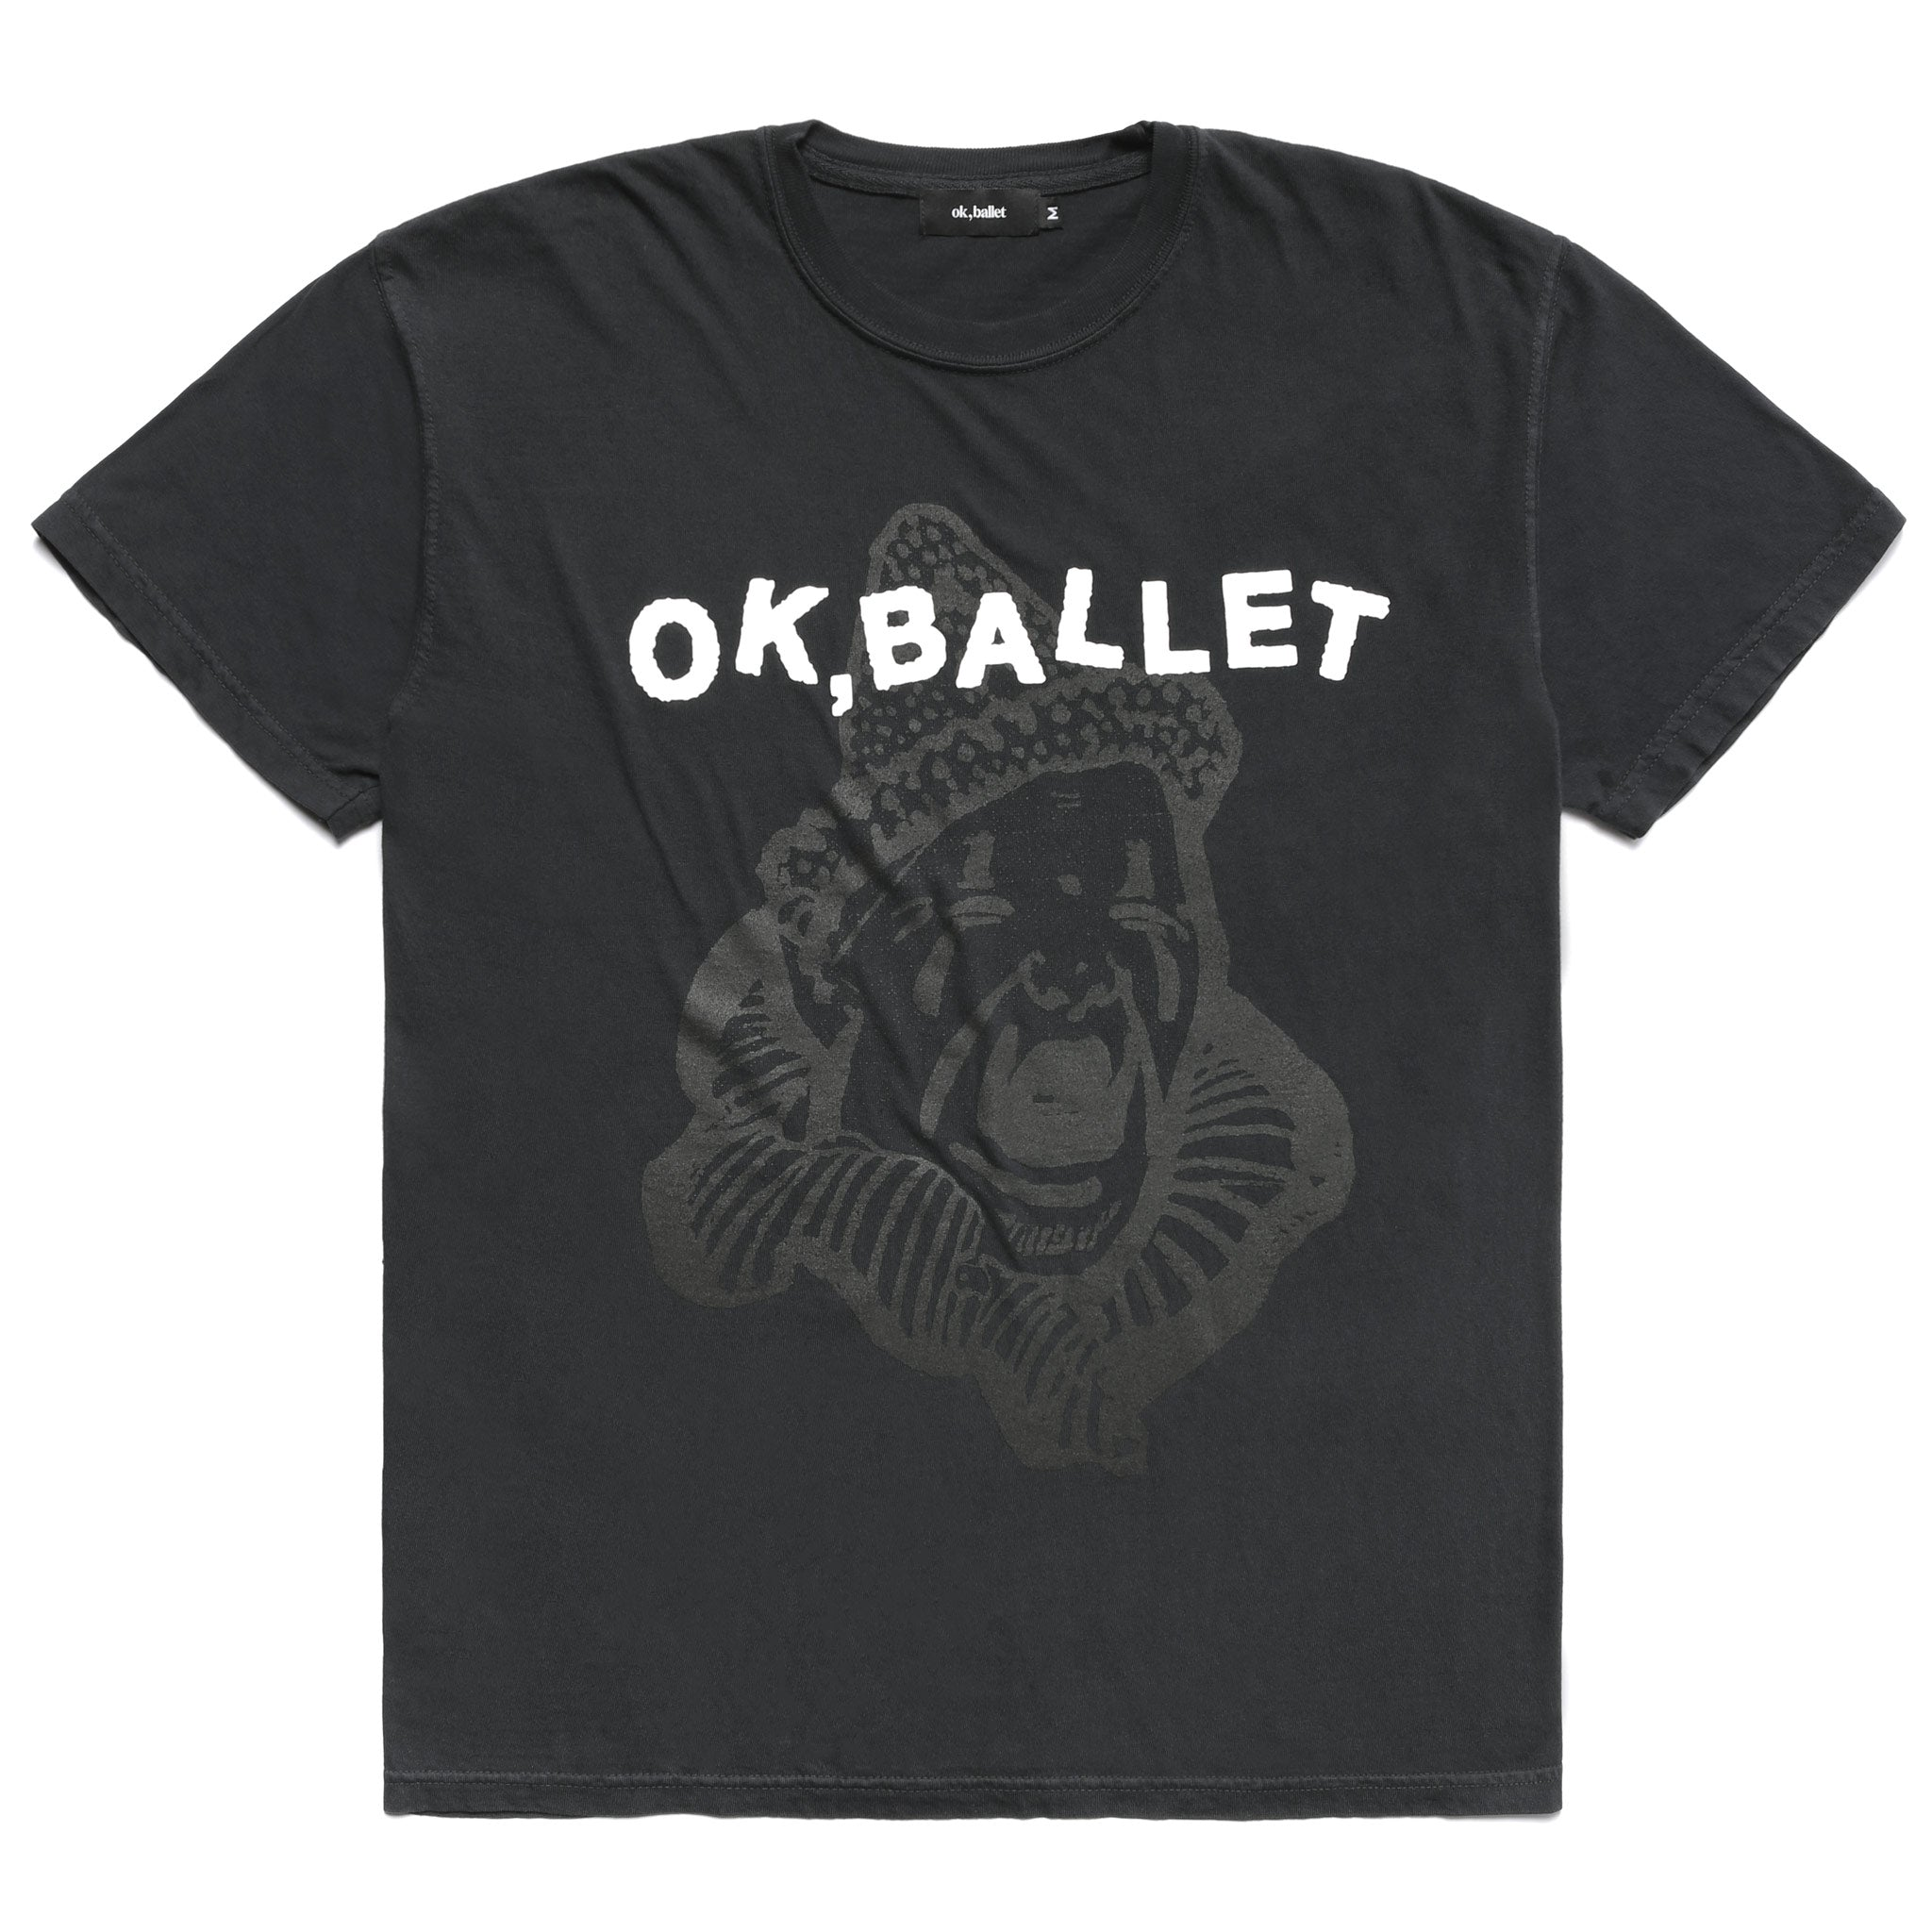 Ok, Ballet Clown Tee